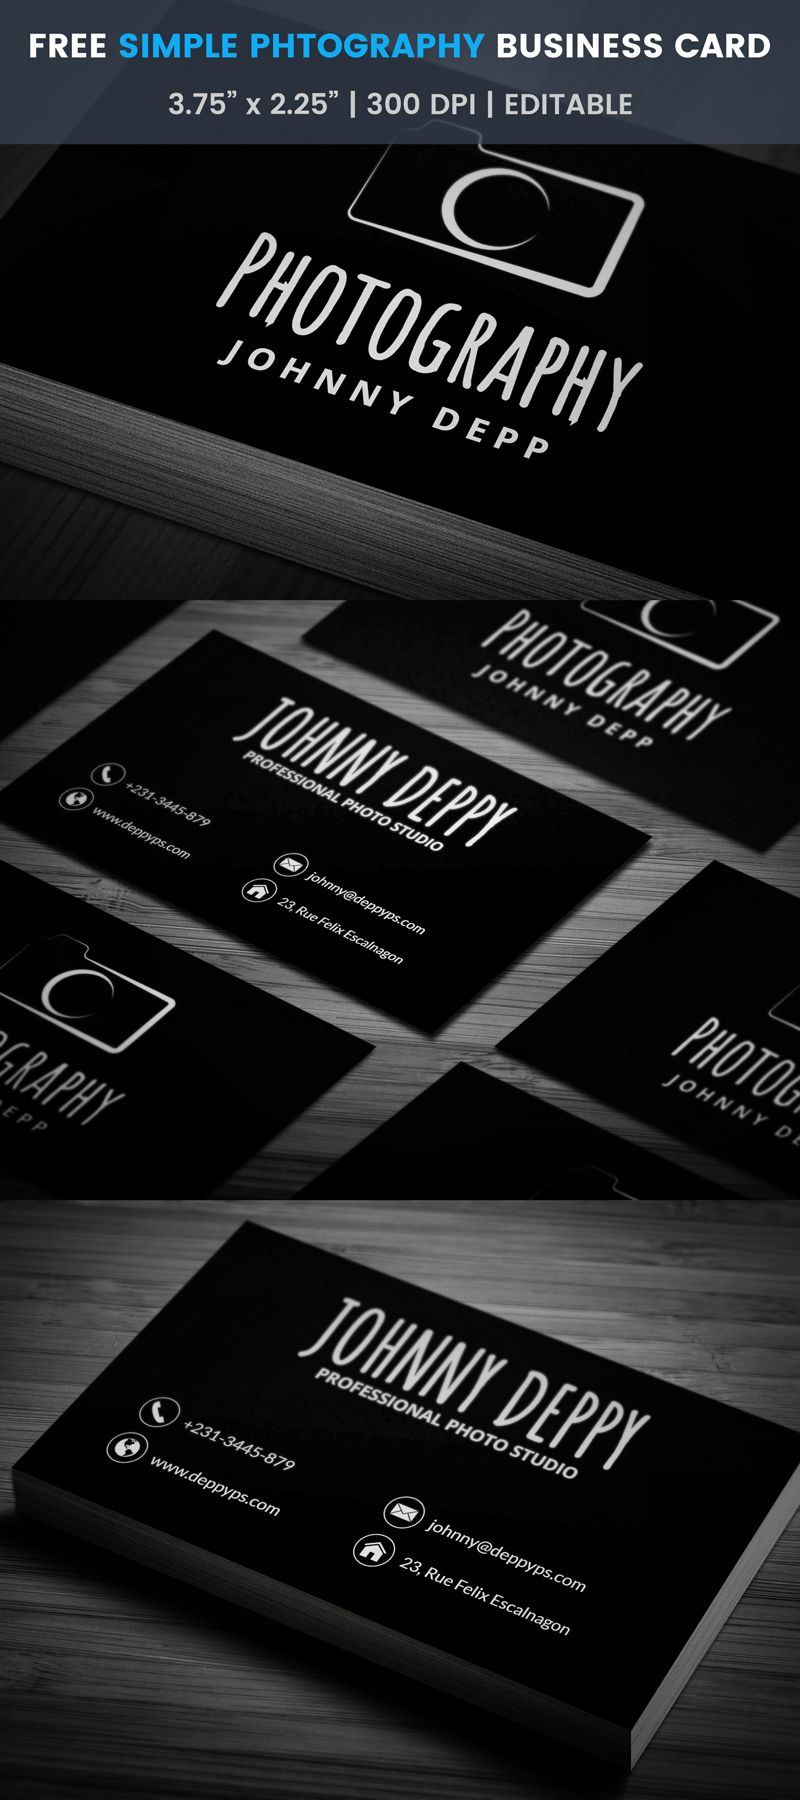 Free vintage photography business card photography business cards retro one color photography business card template click reheart Choice Image